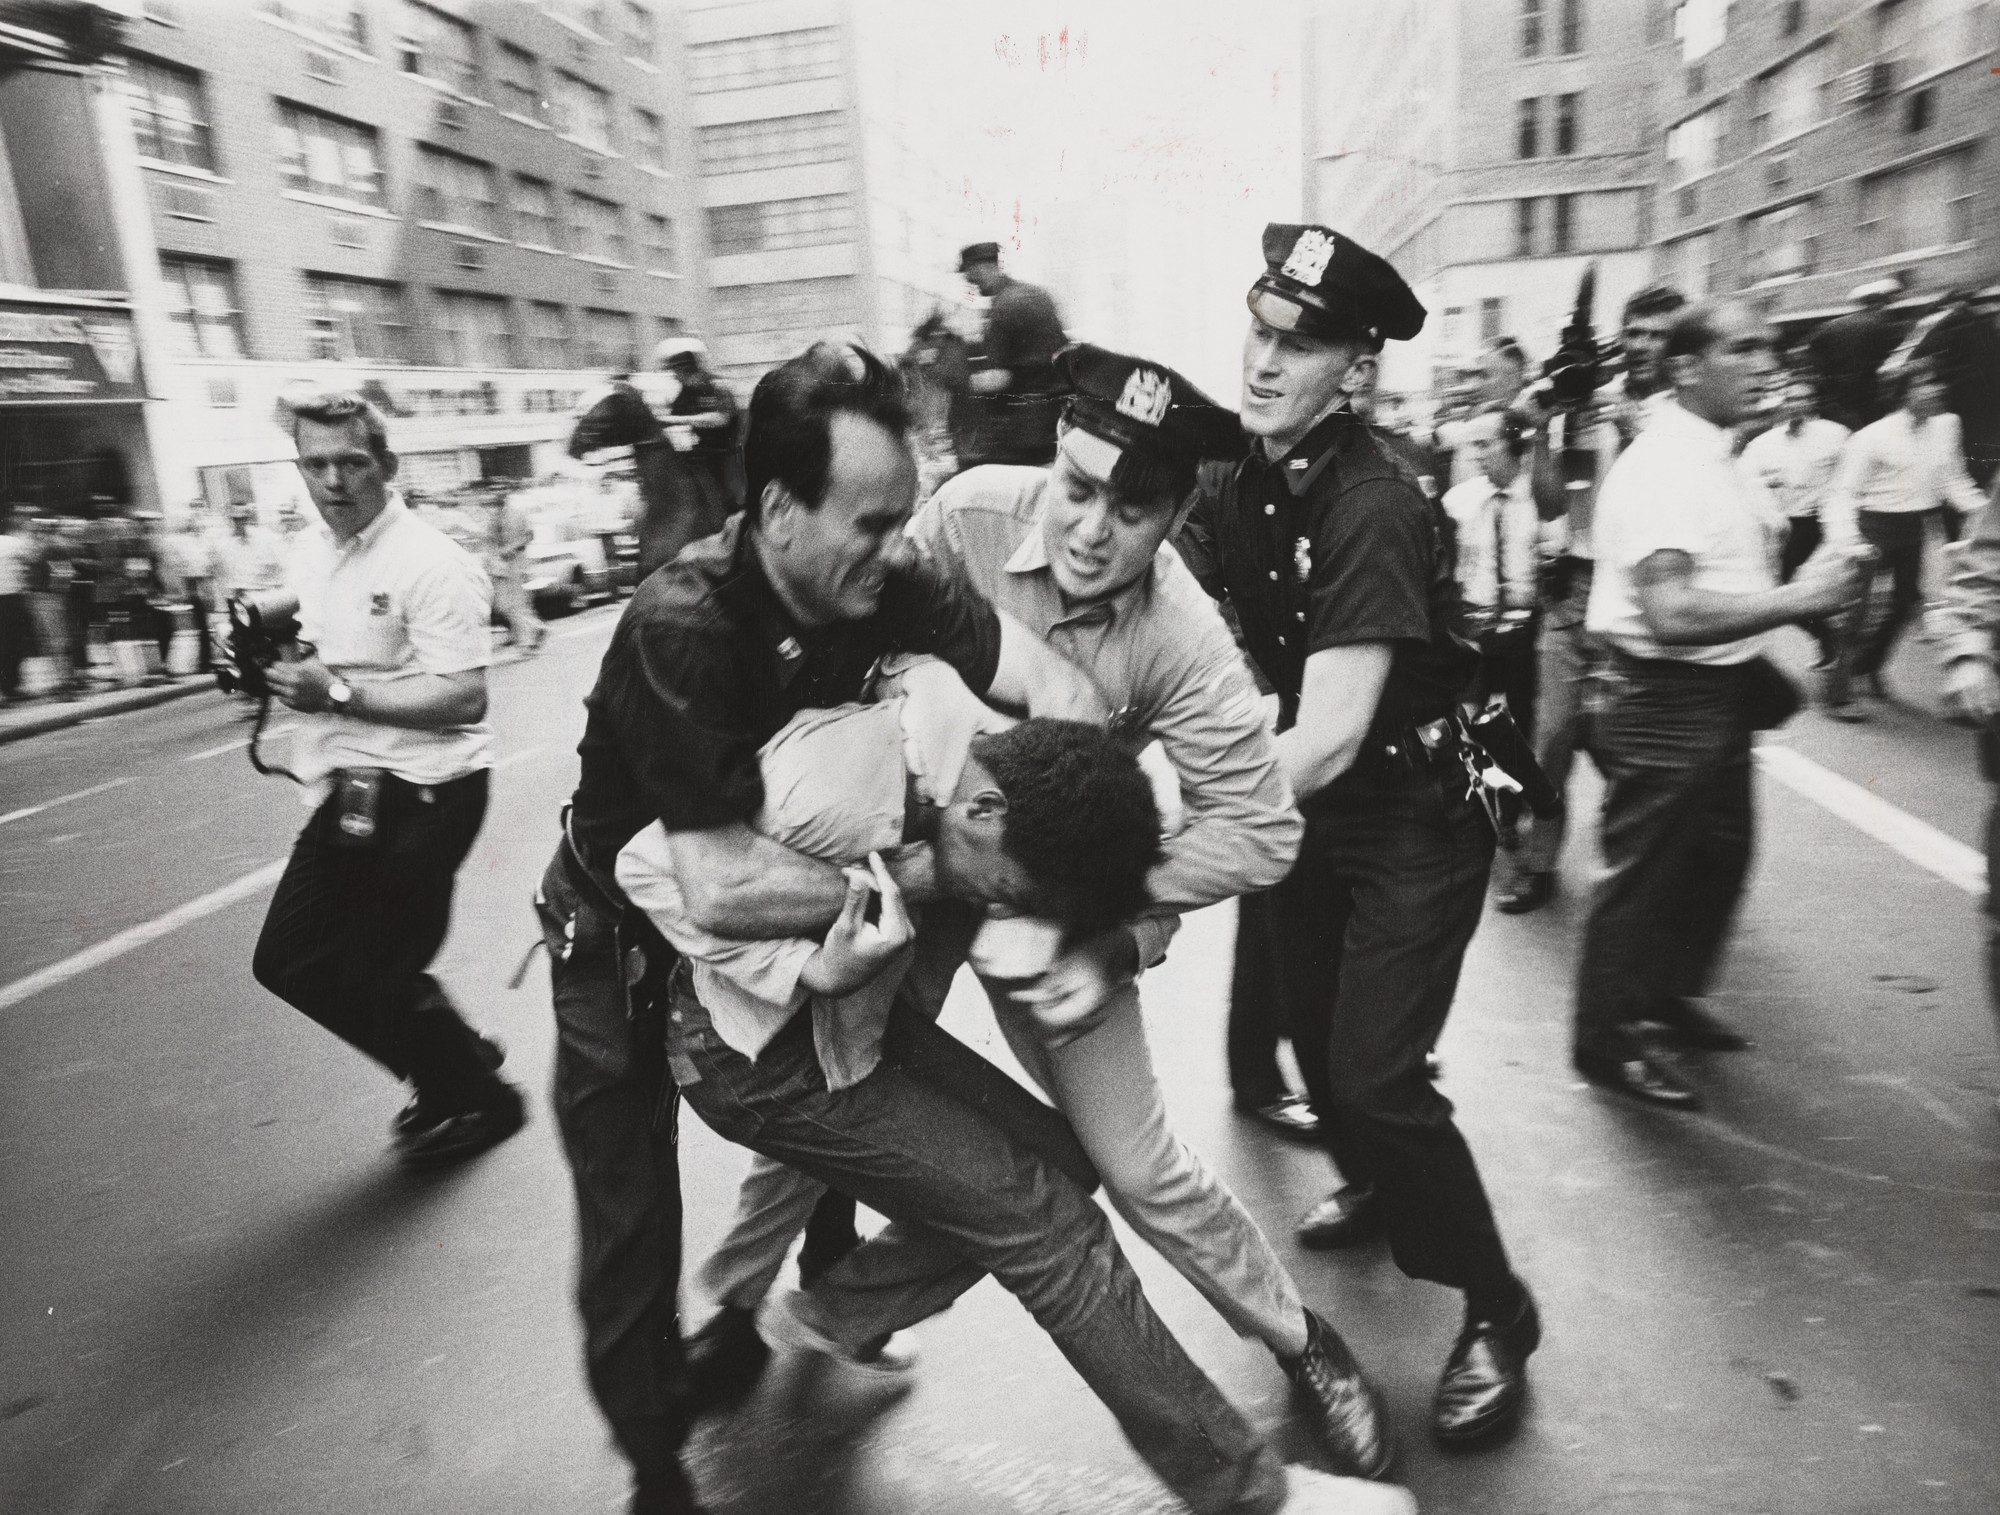 Don Hogan Charles/The New York Times. Policemen Scuffling with Demonstrator  Outside Armory. August 3, 1968 | MoMA